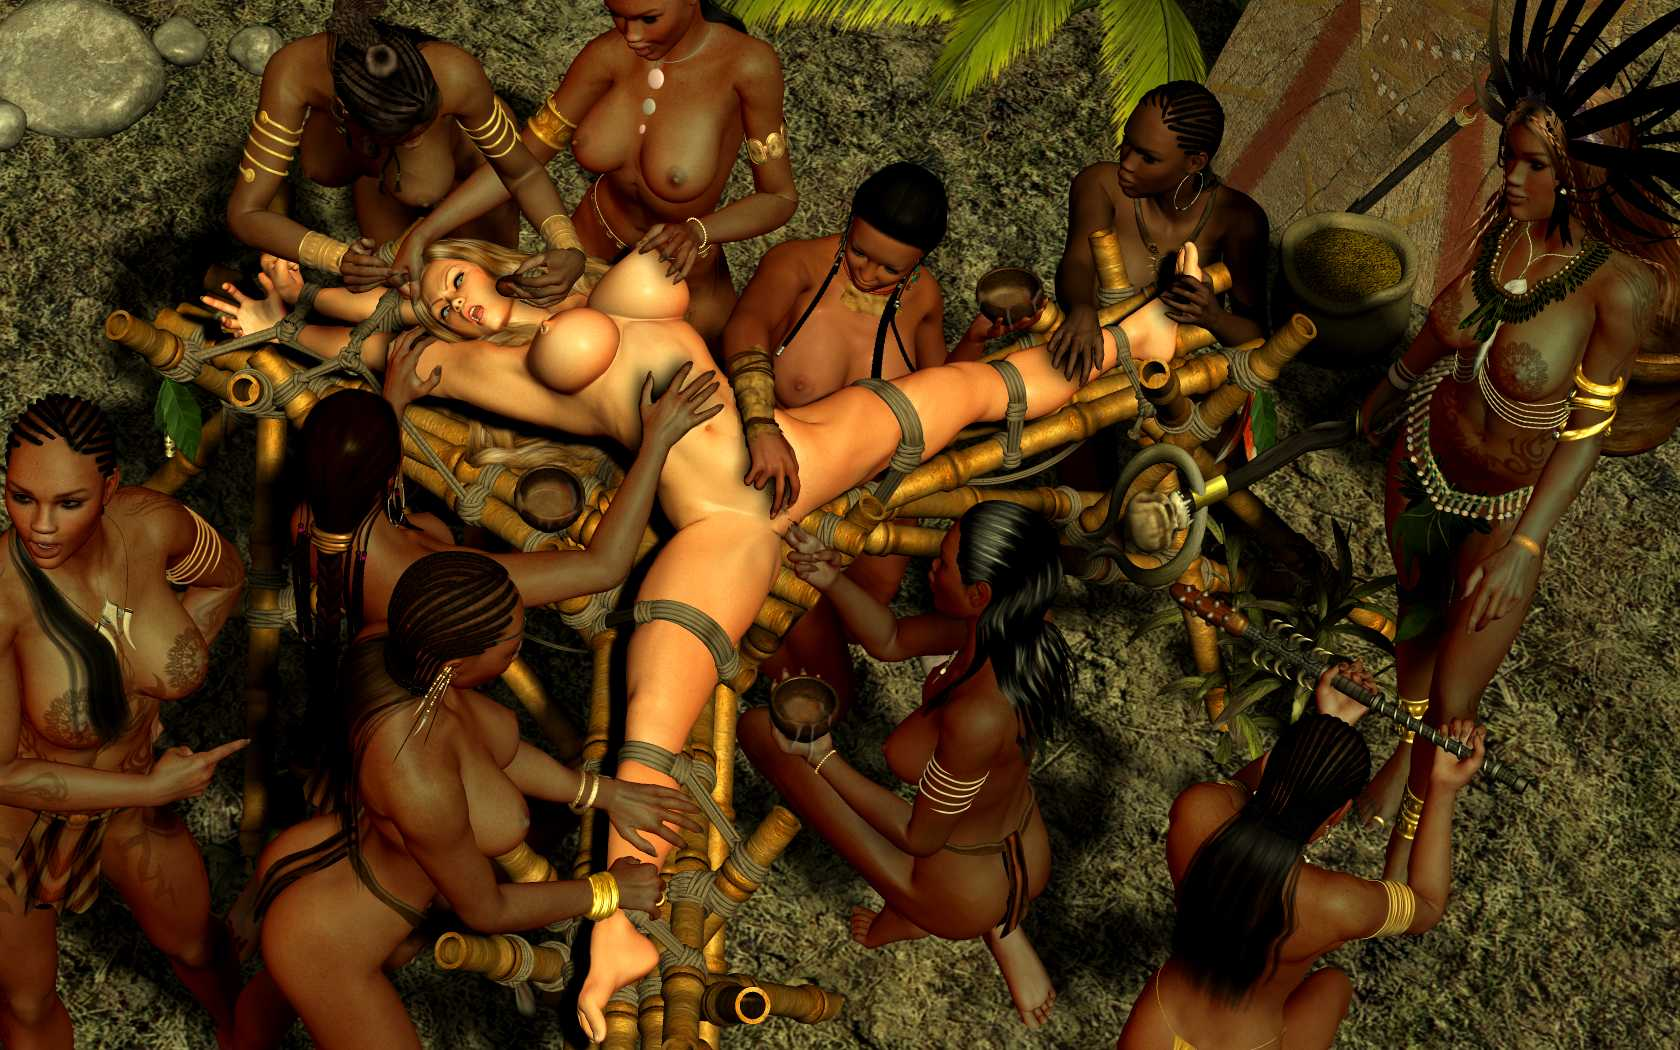 Sex with amazon women, naked in gran canaria